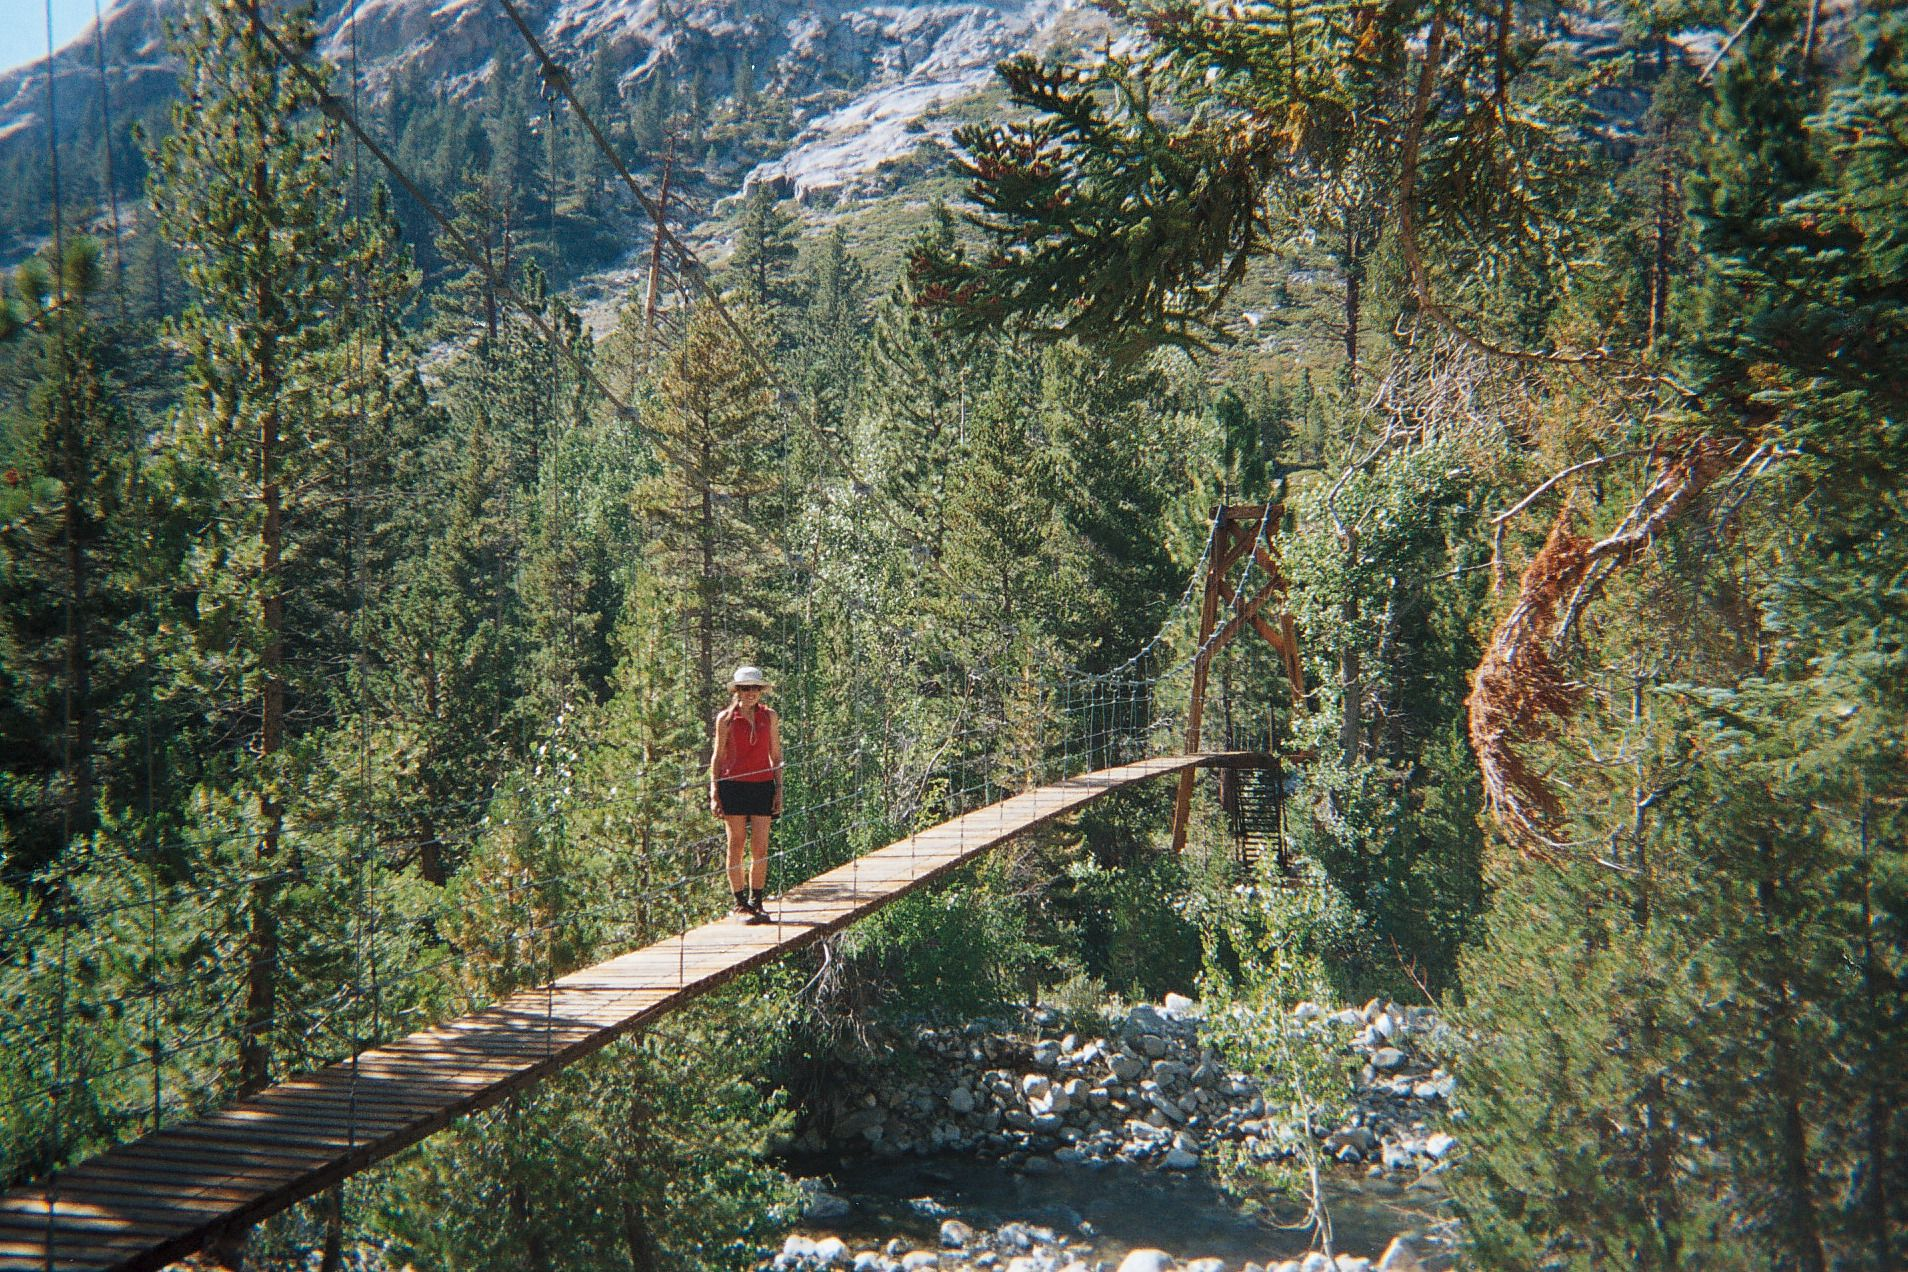 Tanya on the Woods Creek Bridge, John Muir Trail. Photo by Mark Probert.